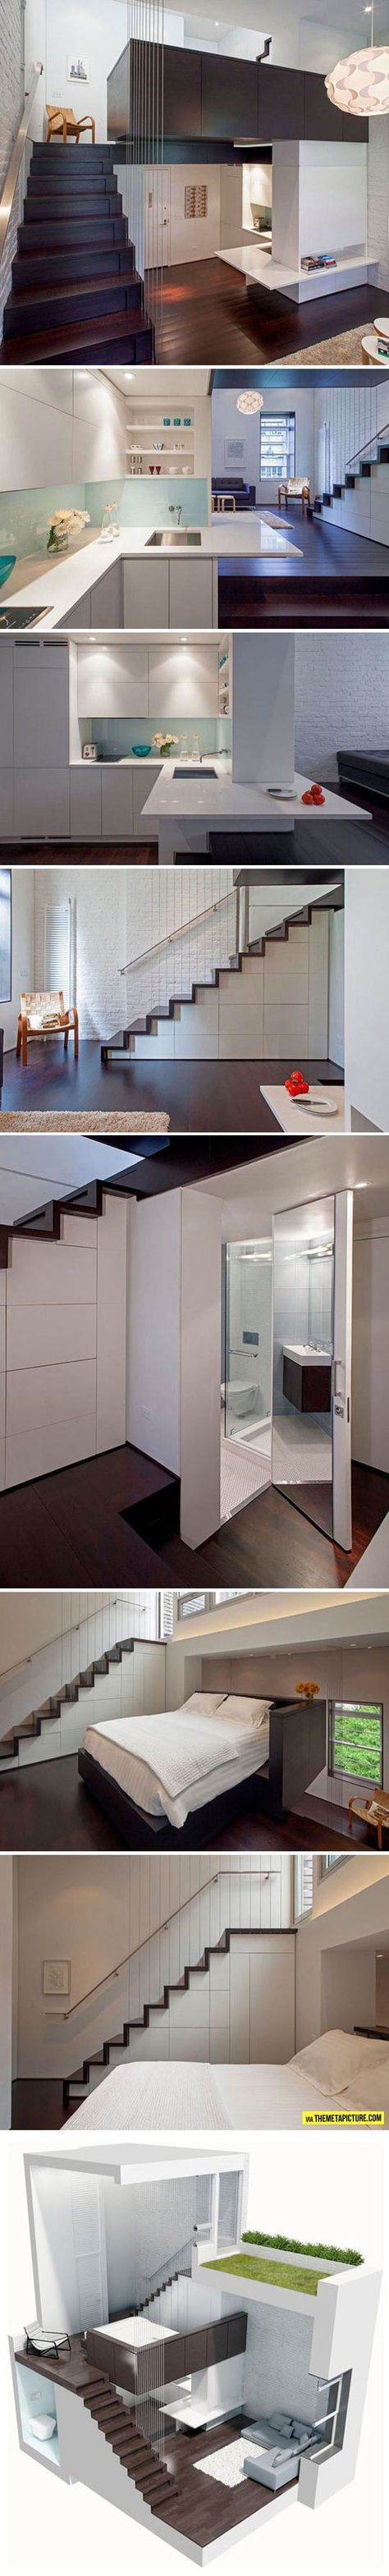 43 best Mezzanines images on Pinterest | Small spaces, Attic ...